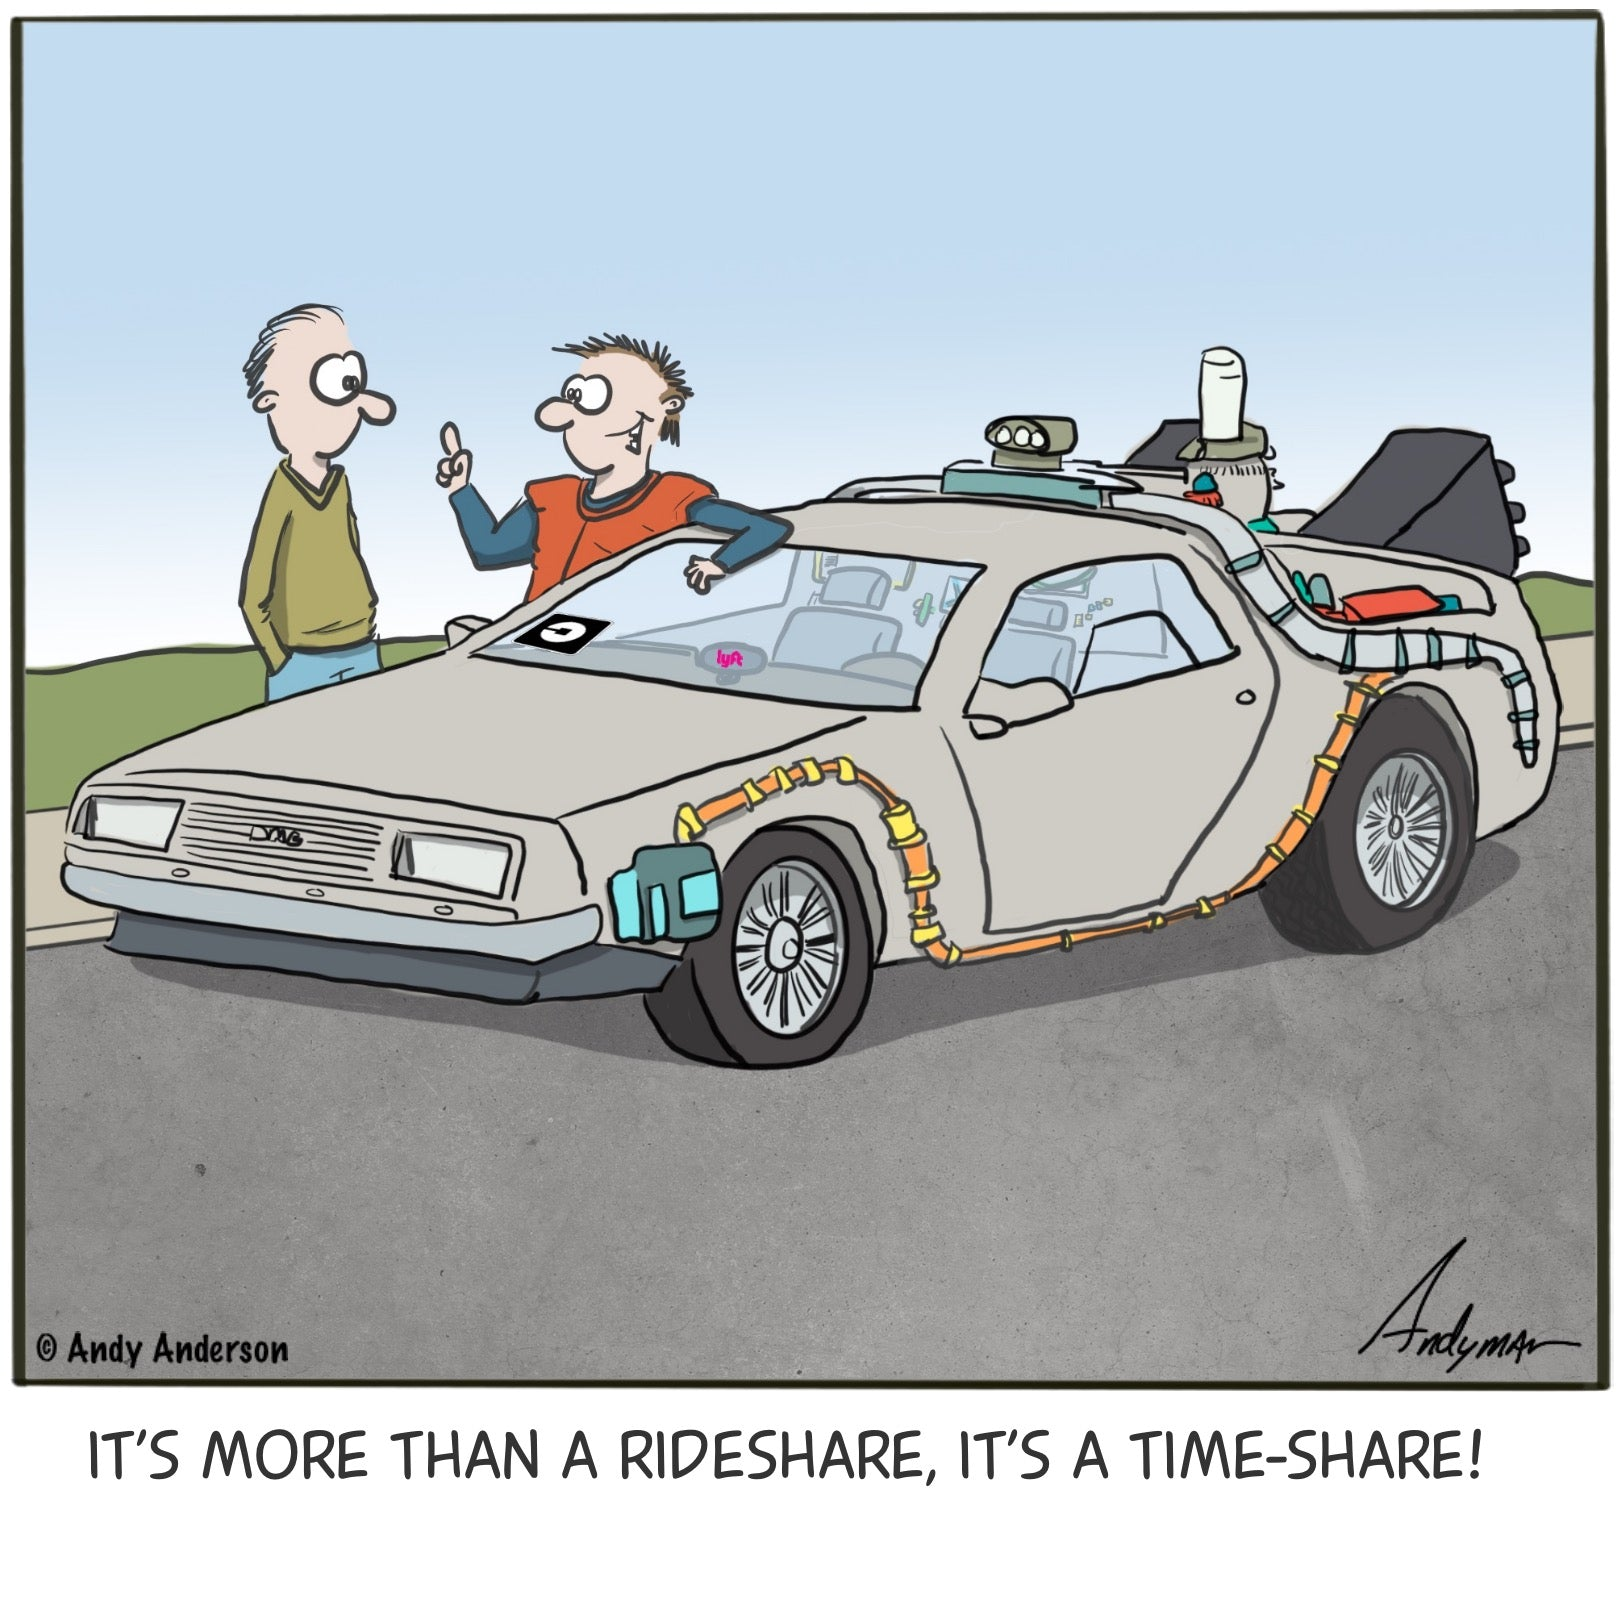 Rideshare and time-share cartoon by Andy Anderson